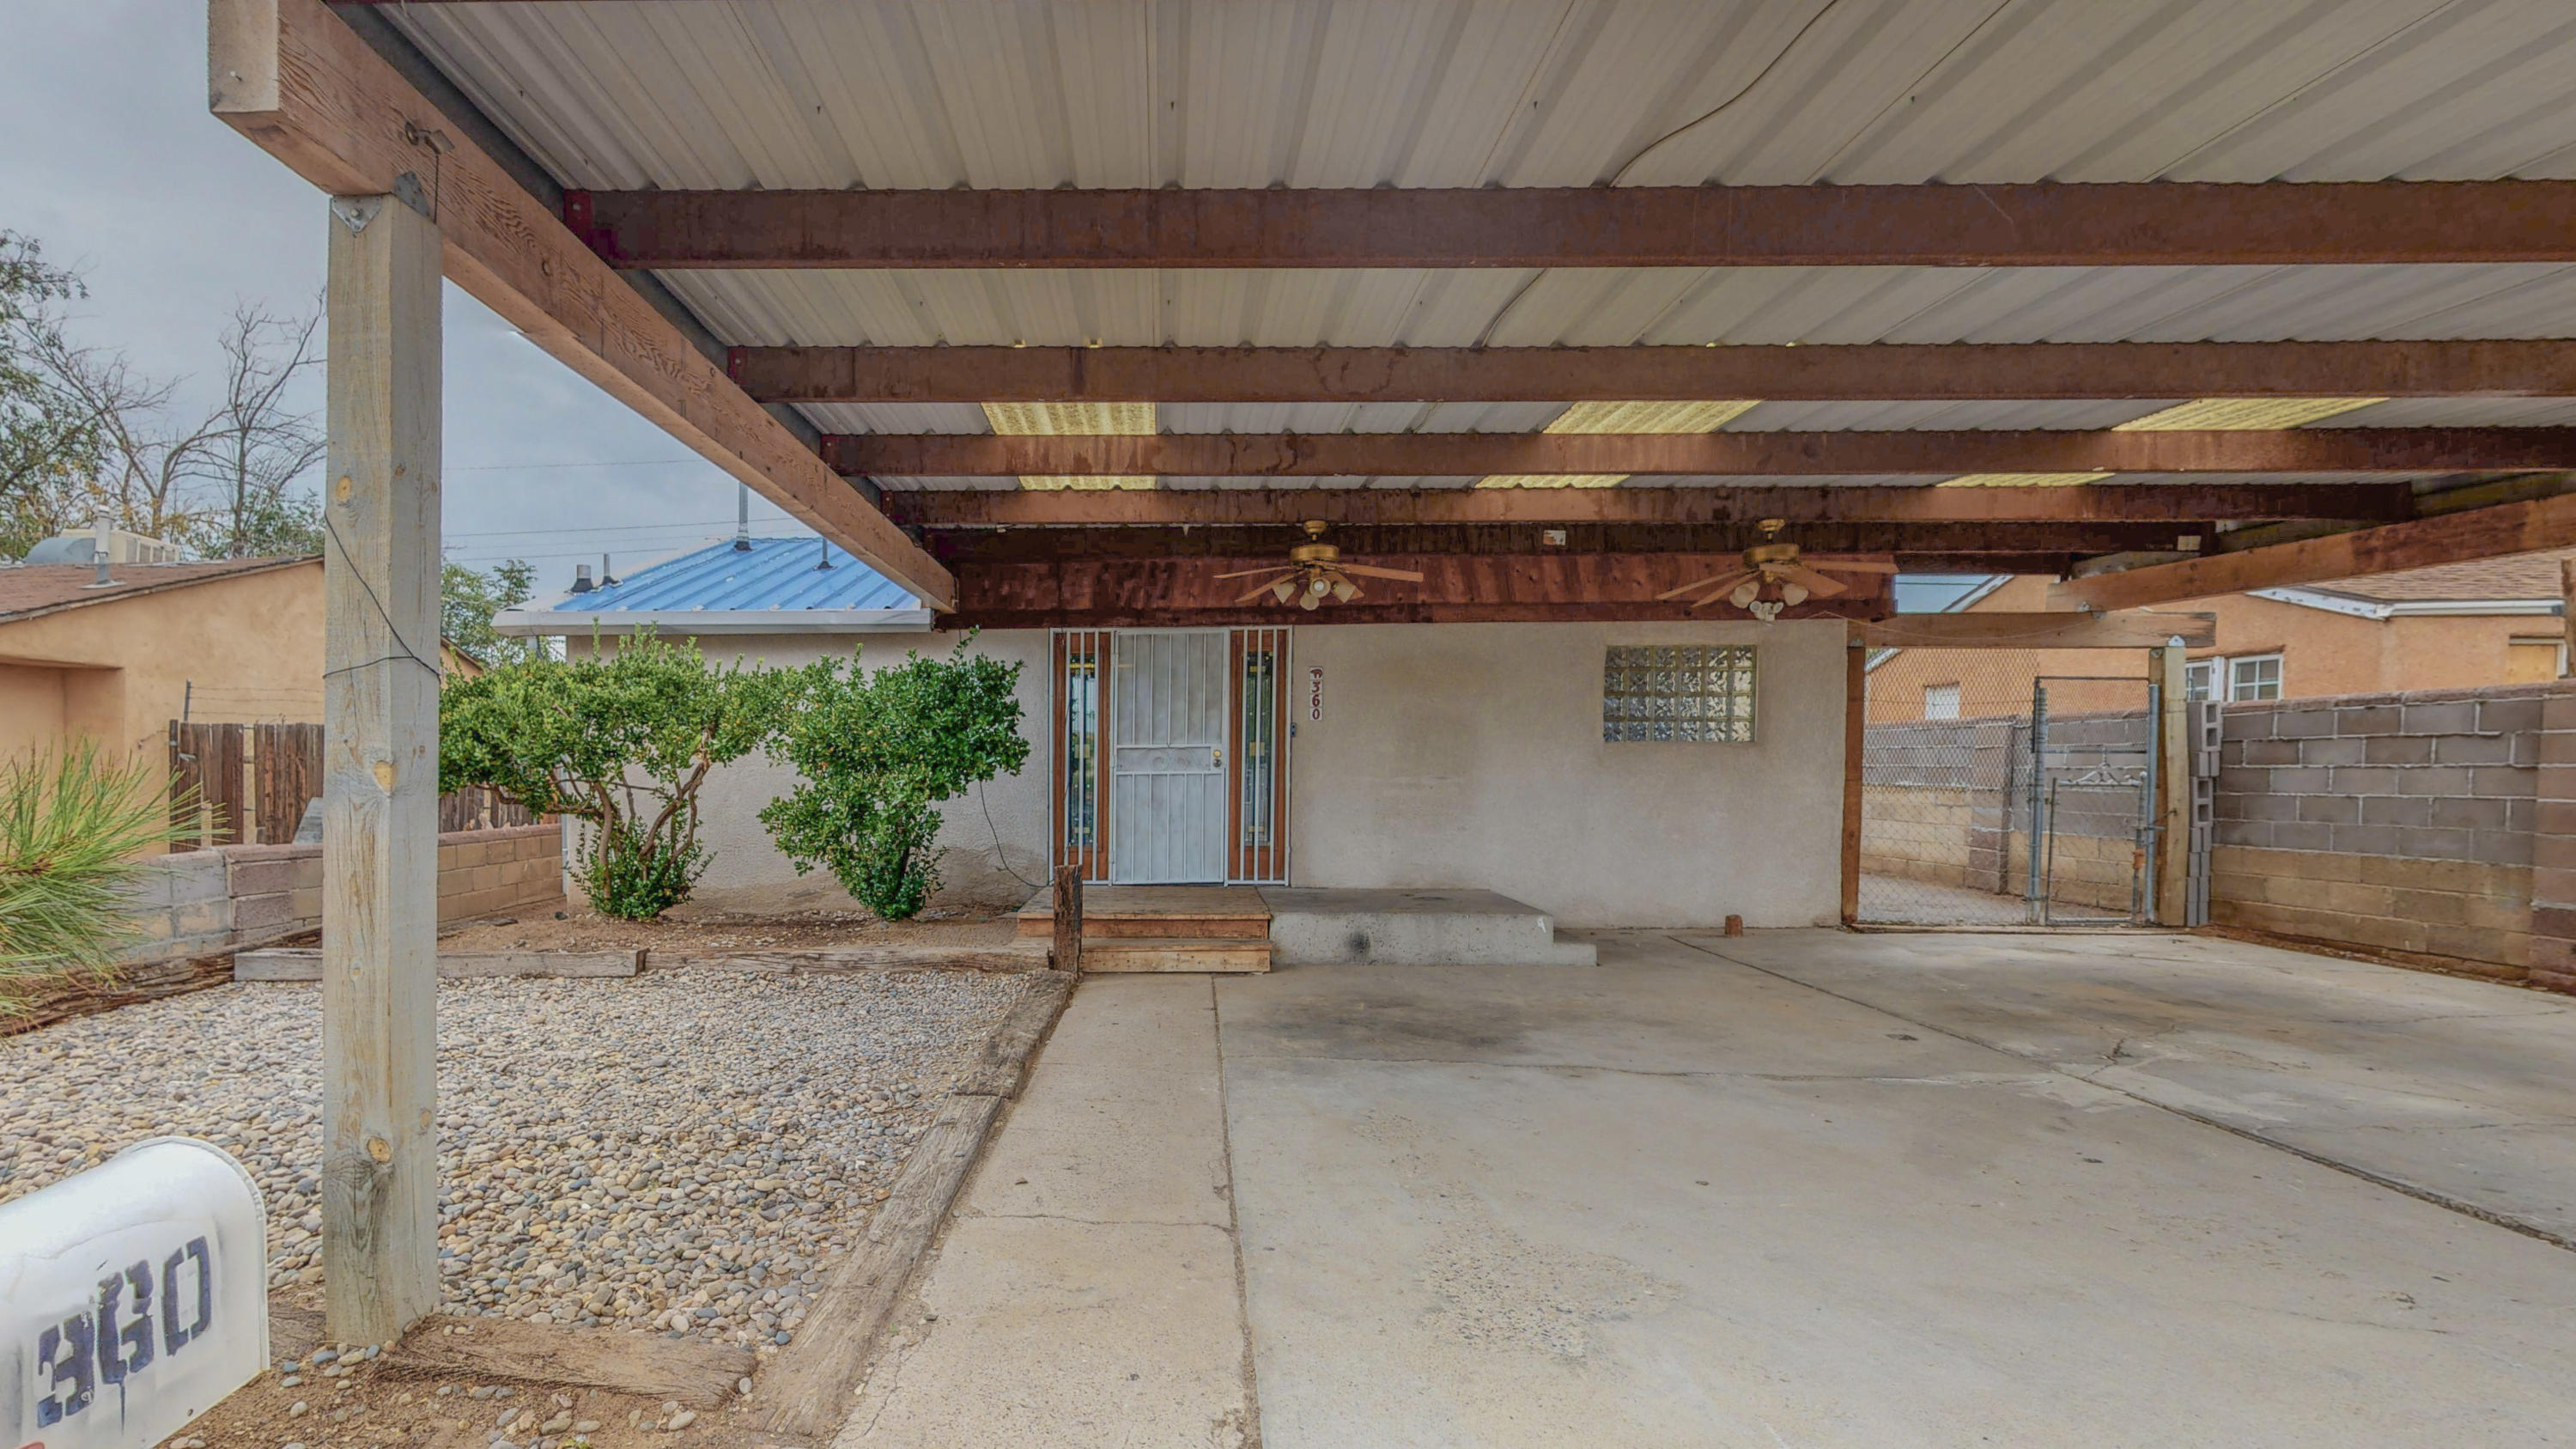 This home is centrally located near I-40, shopping centers, and restaurants. The bedrooms are spacious and it has a second living room in the back with a cozy chimney and plenty of space to entertain.